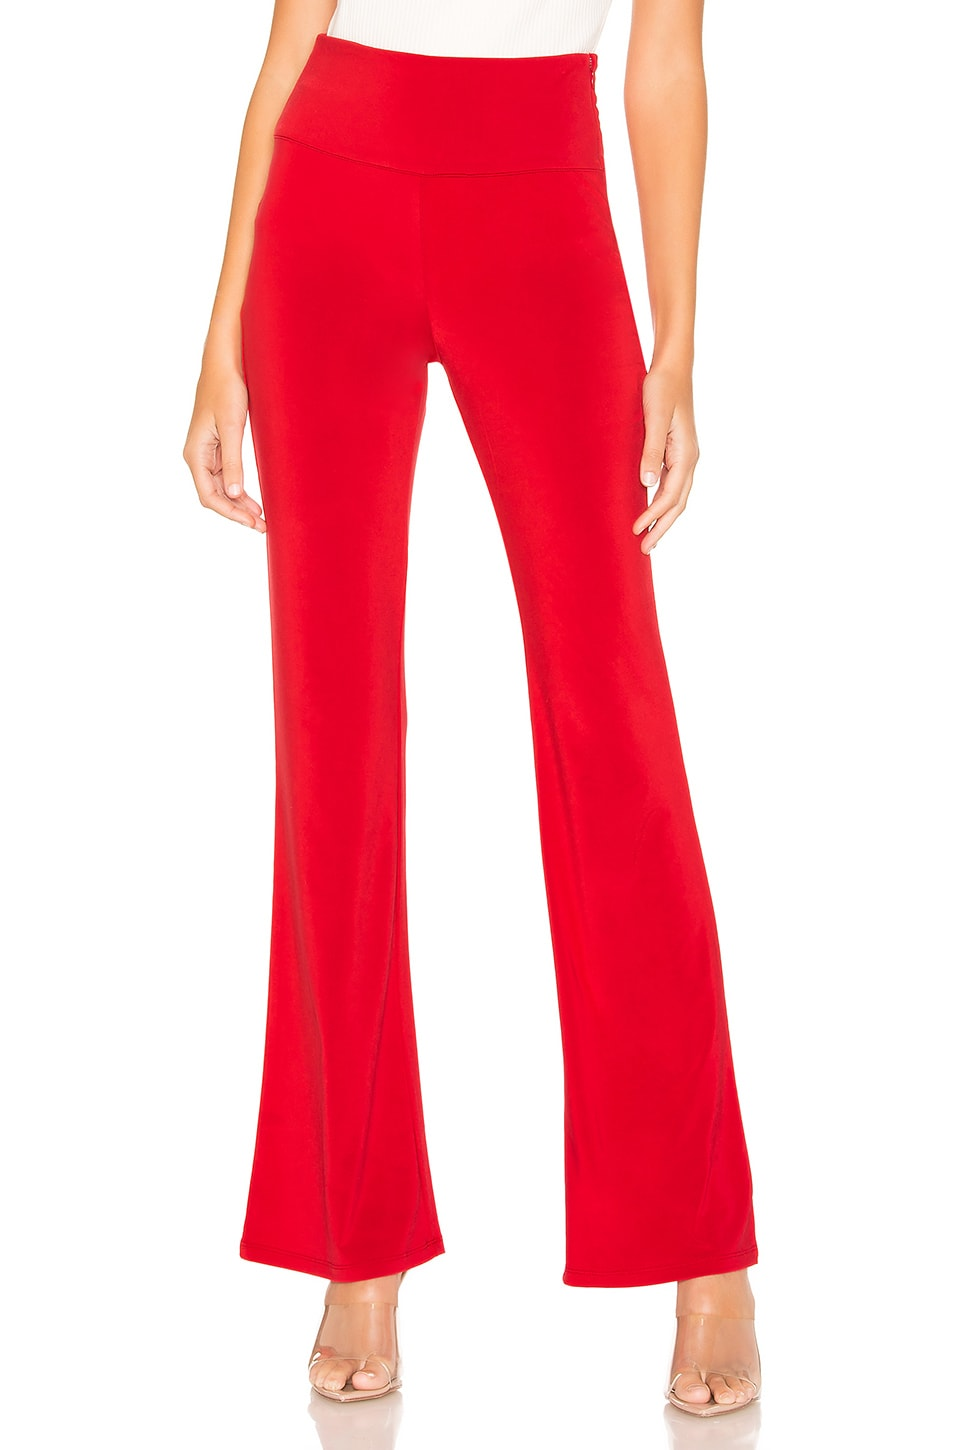 Lovers + Friends Annebell Pants in Red